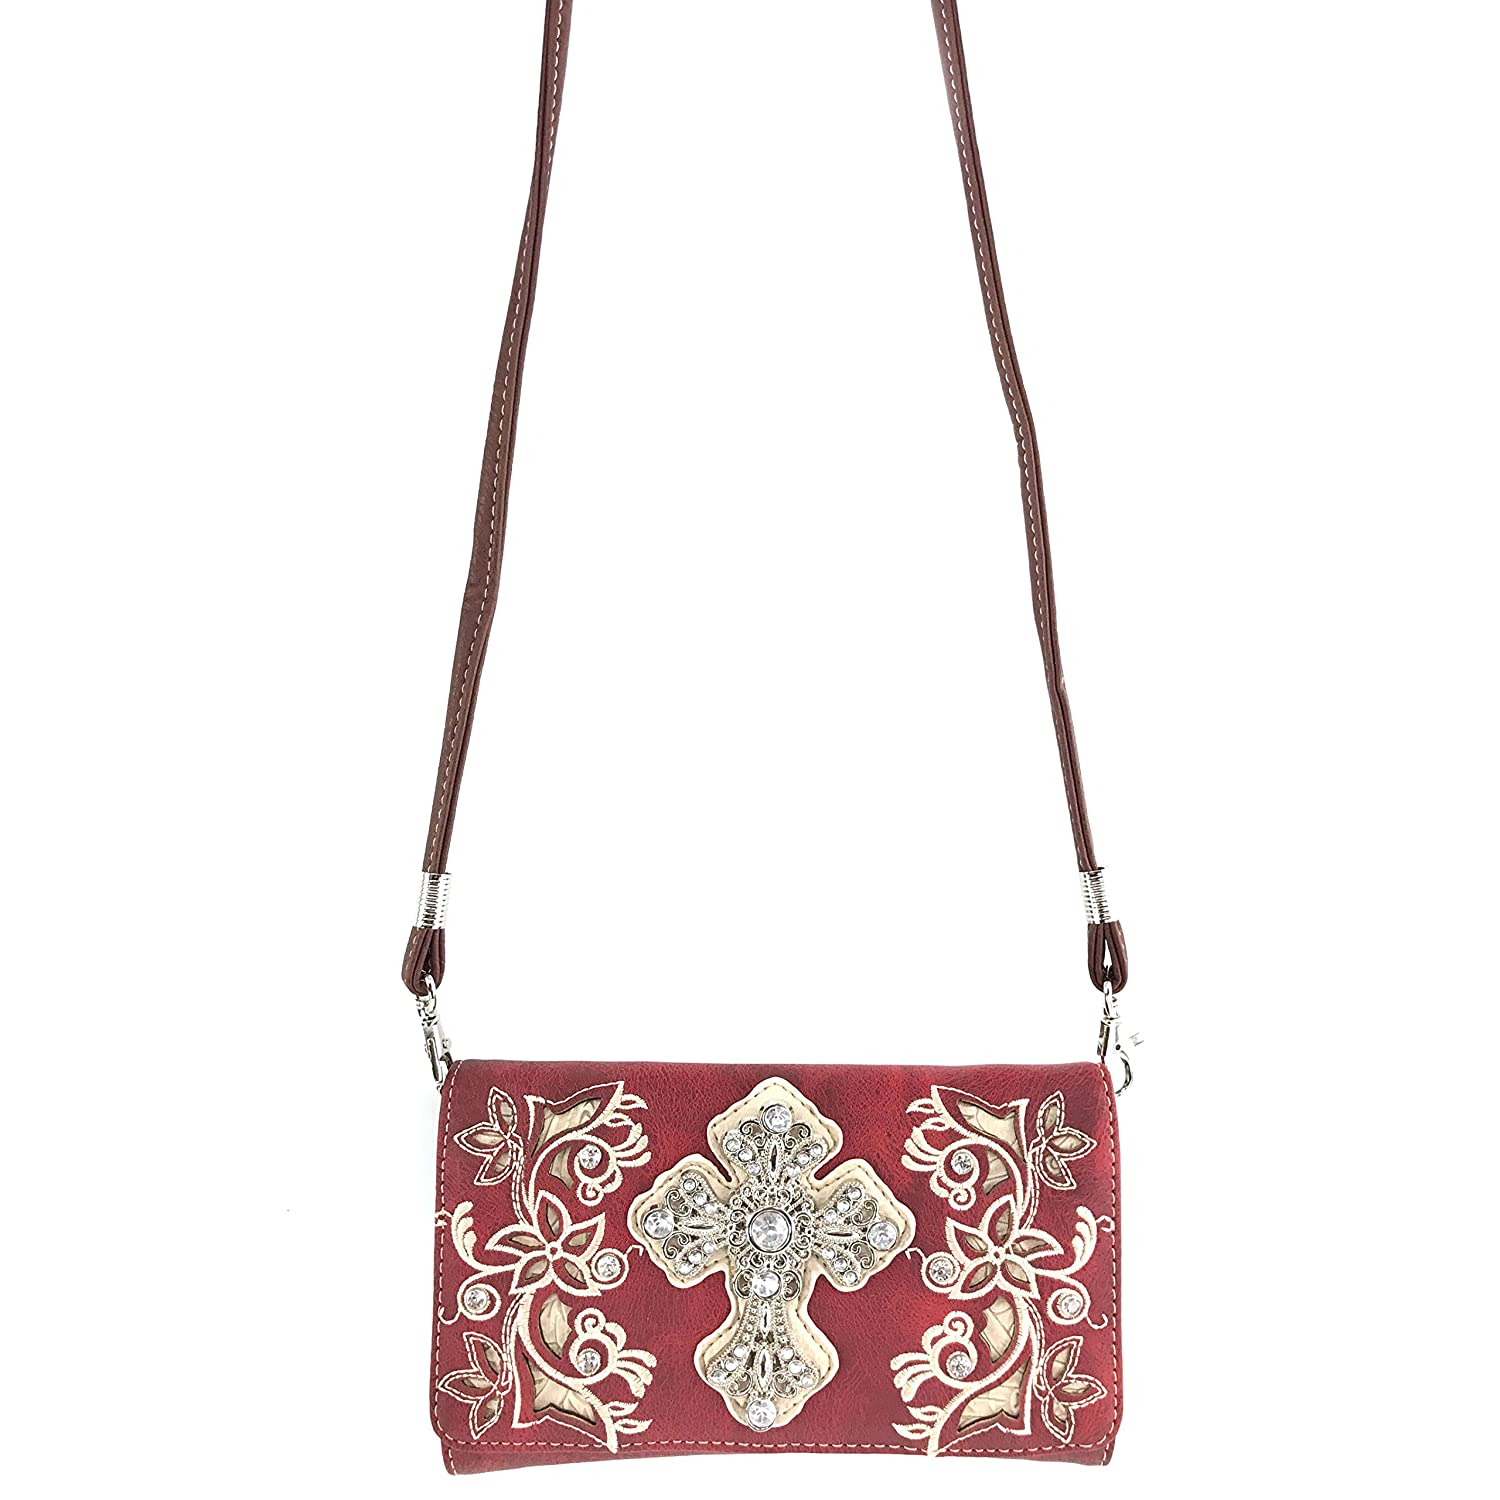 Justin West Embroidery Floral Rhinestone Silver Cross Laser Cut Tooled Leather Western Shoulder Concealed Carry Handbag Purse Messenger Bag Tote Wallet